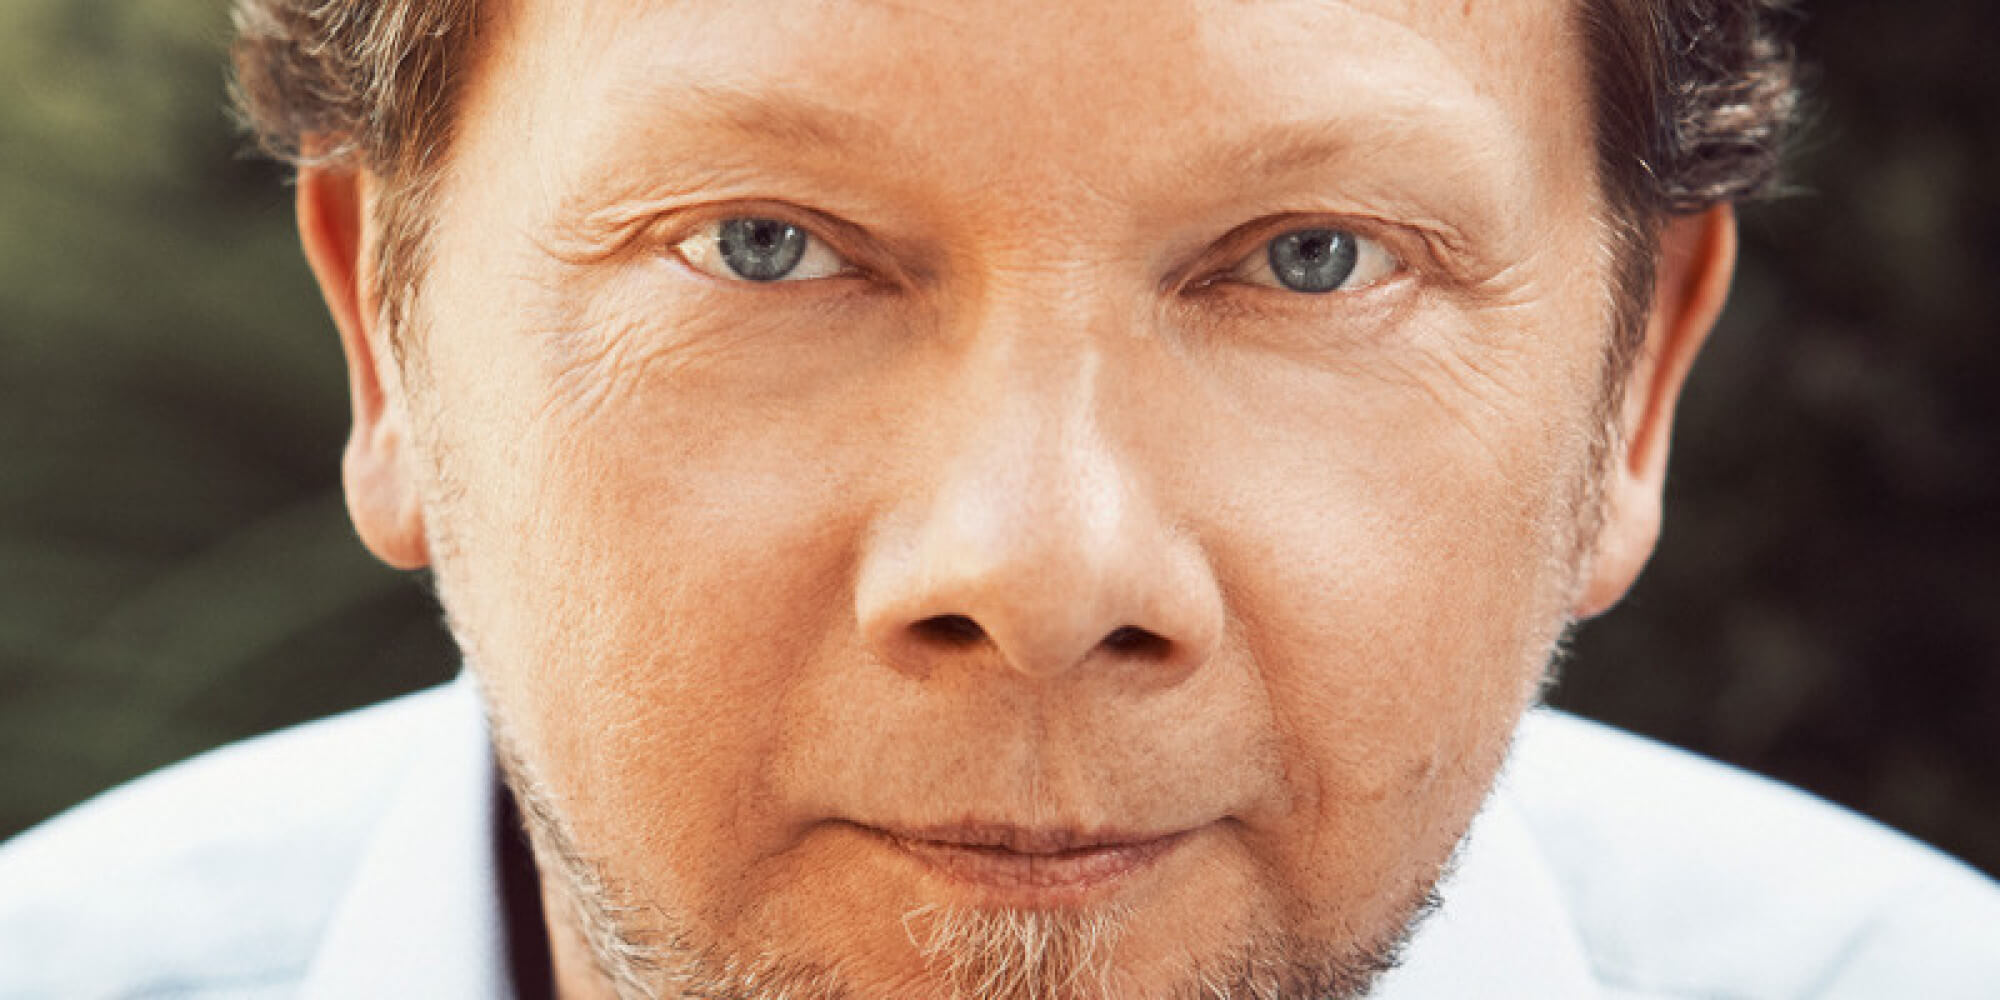 An Evening with Eckhart Tolle in Denver | The Denver Ear